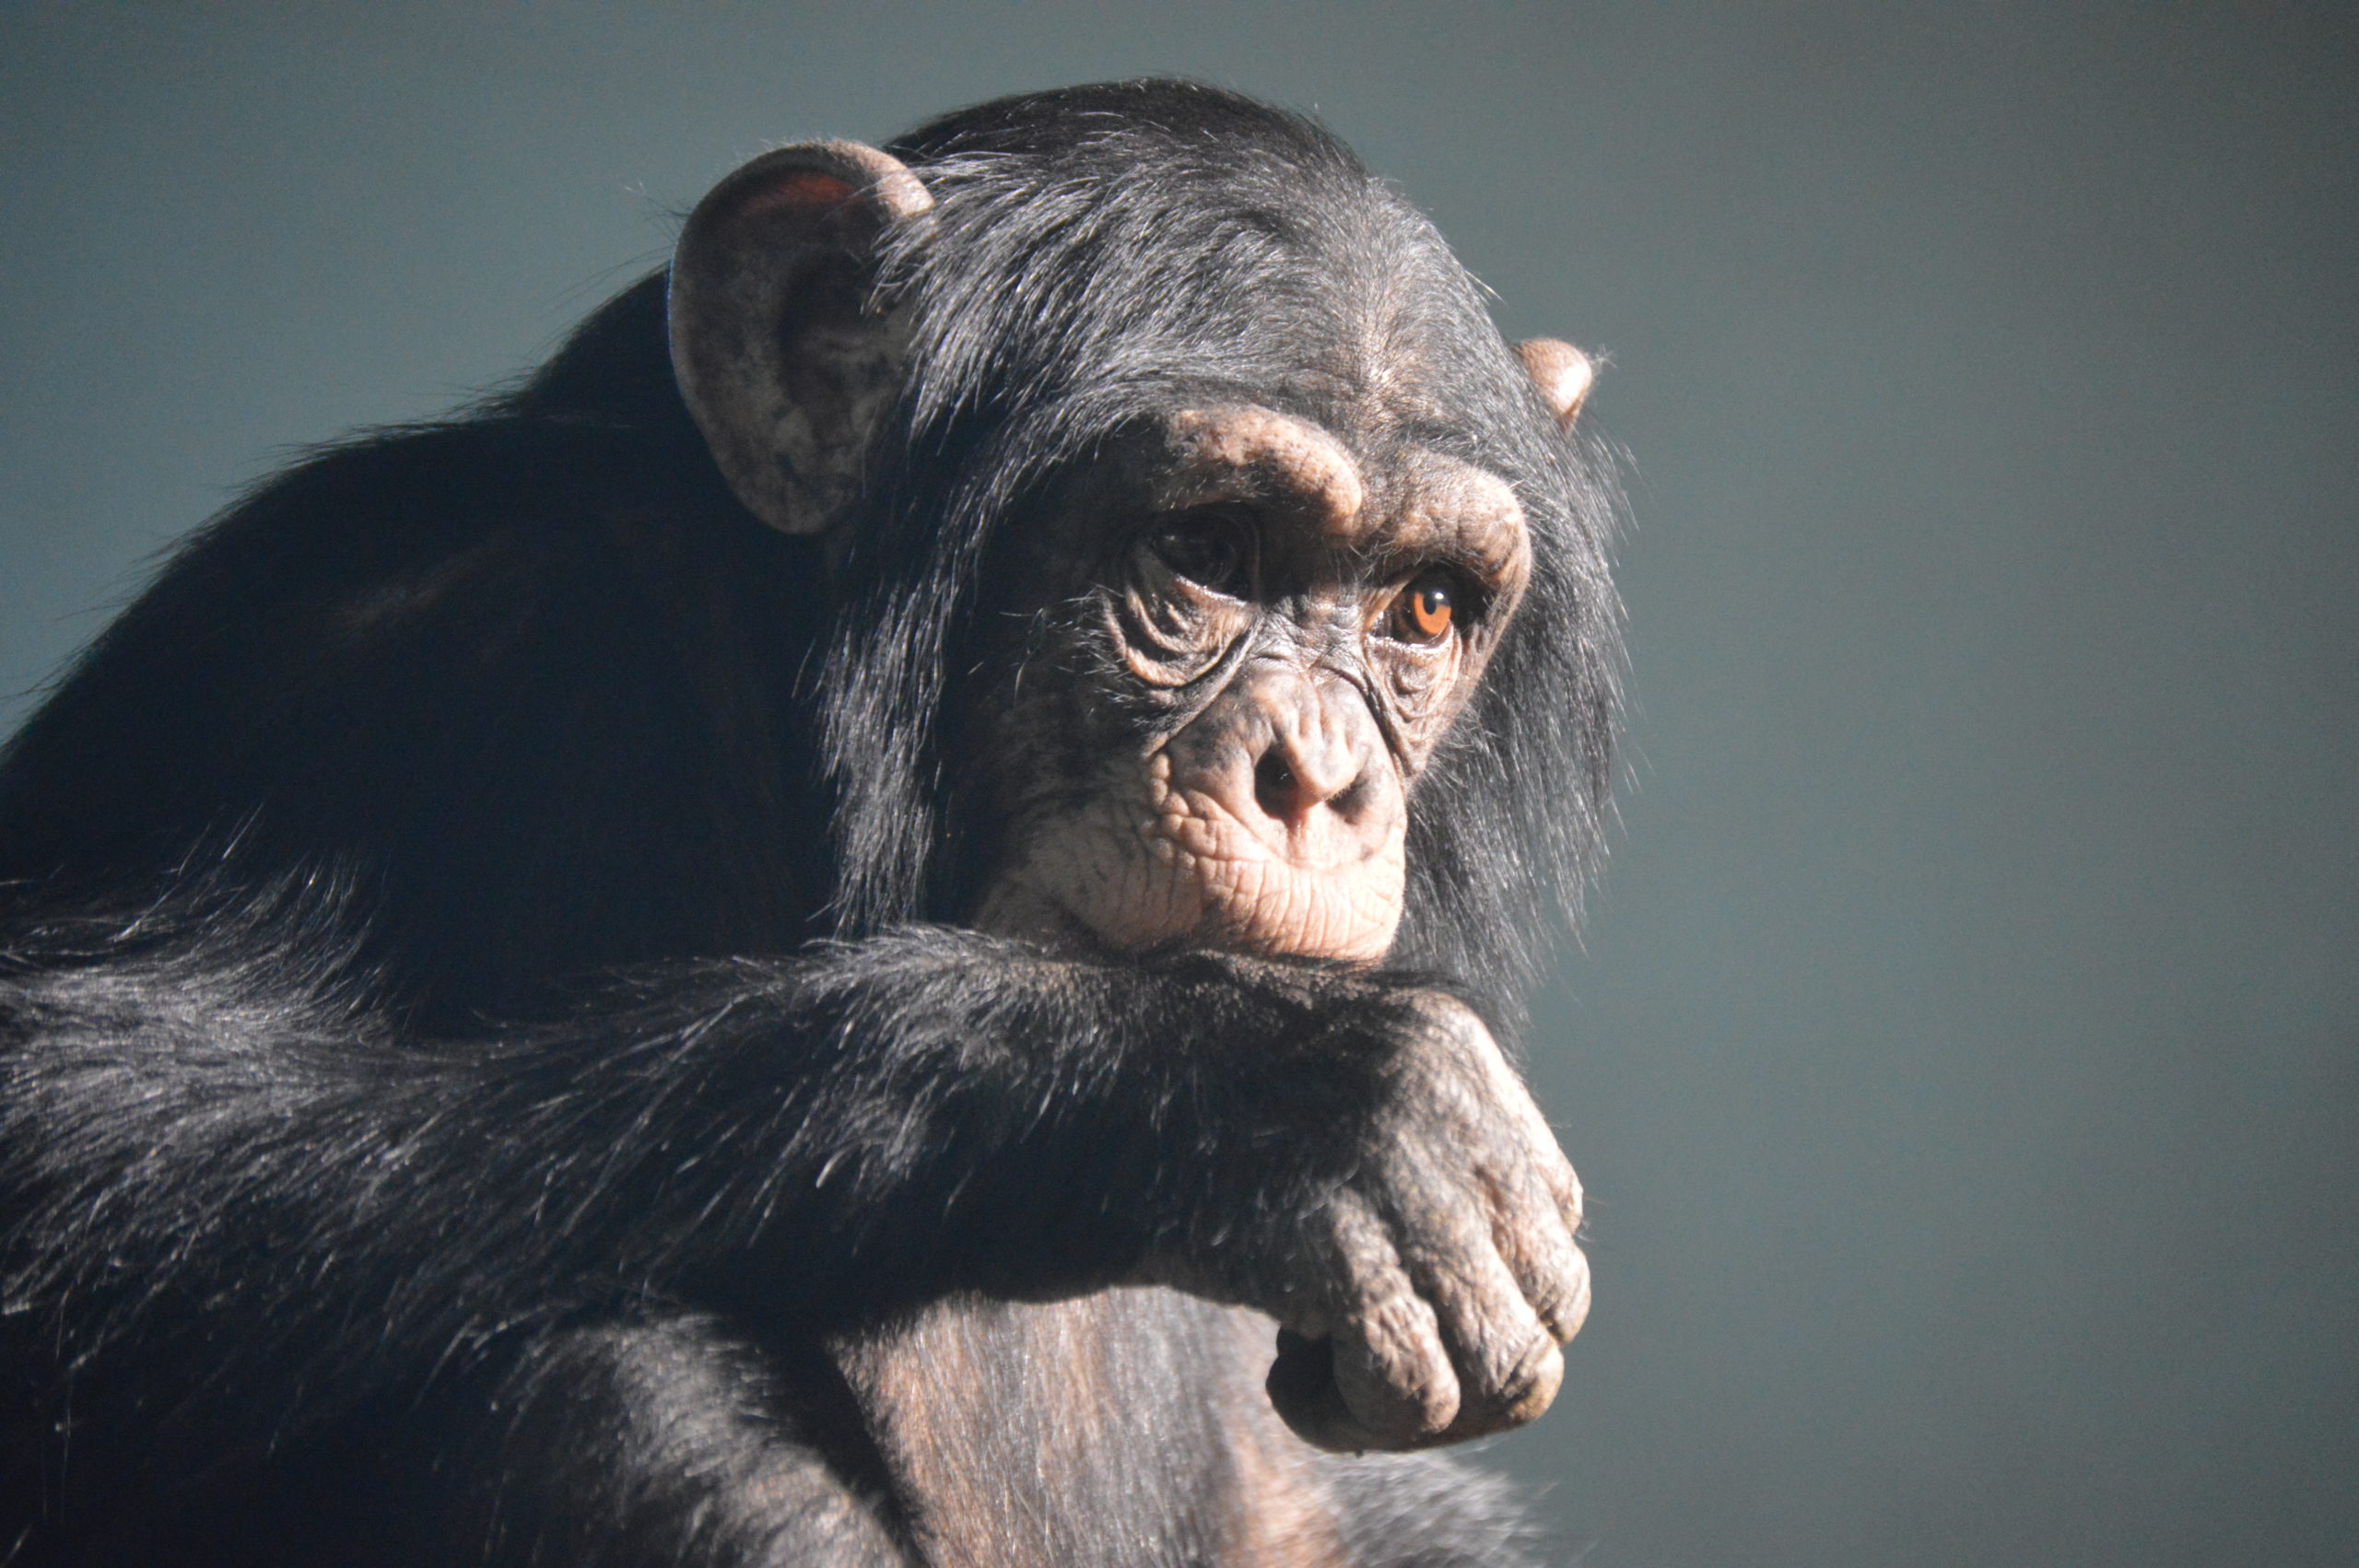 A pensive chimp at Edinburgh Zoo.